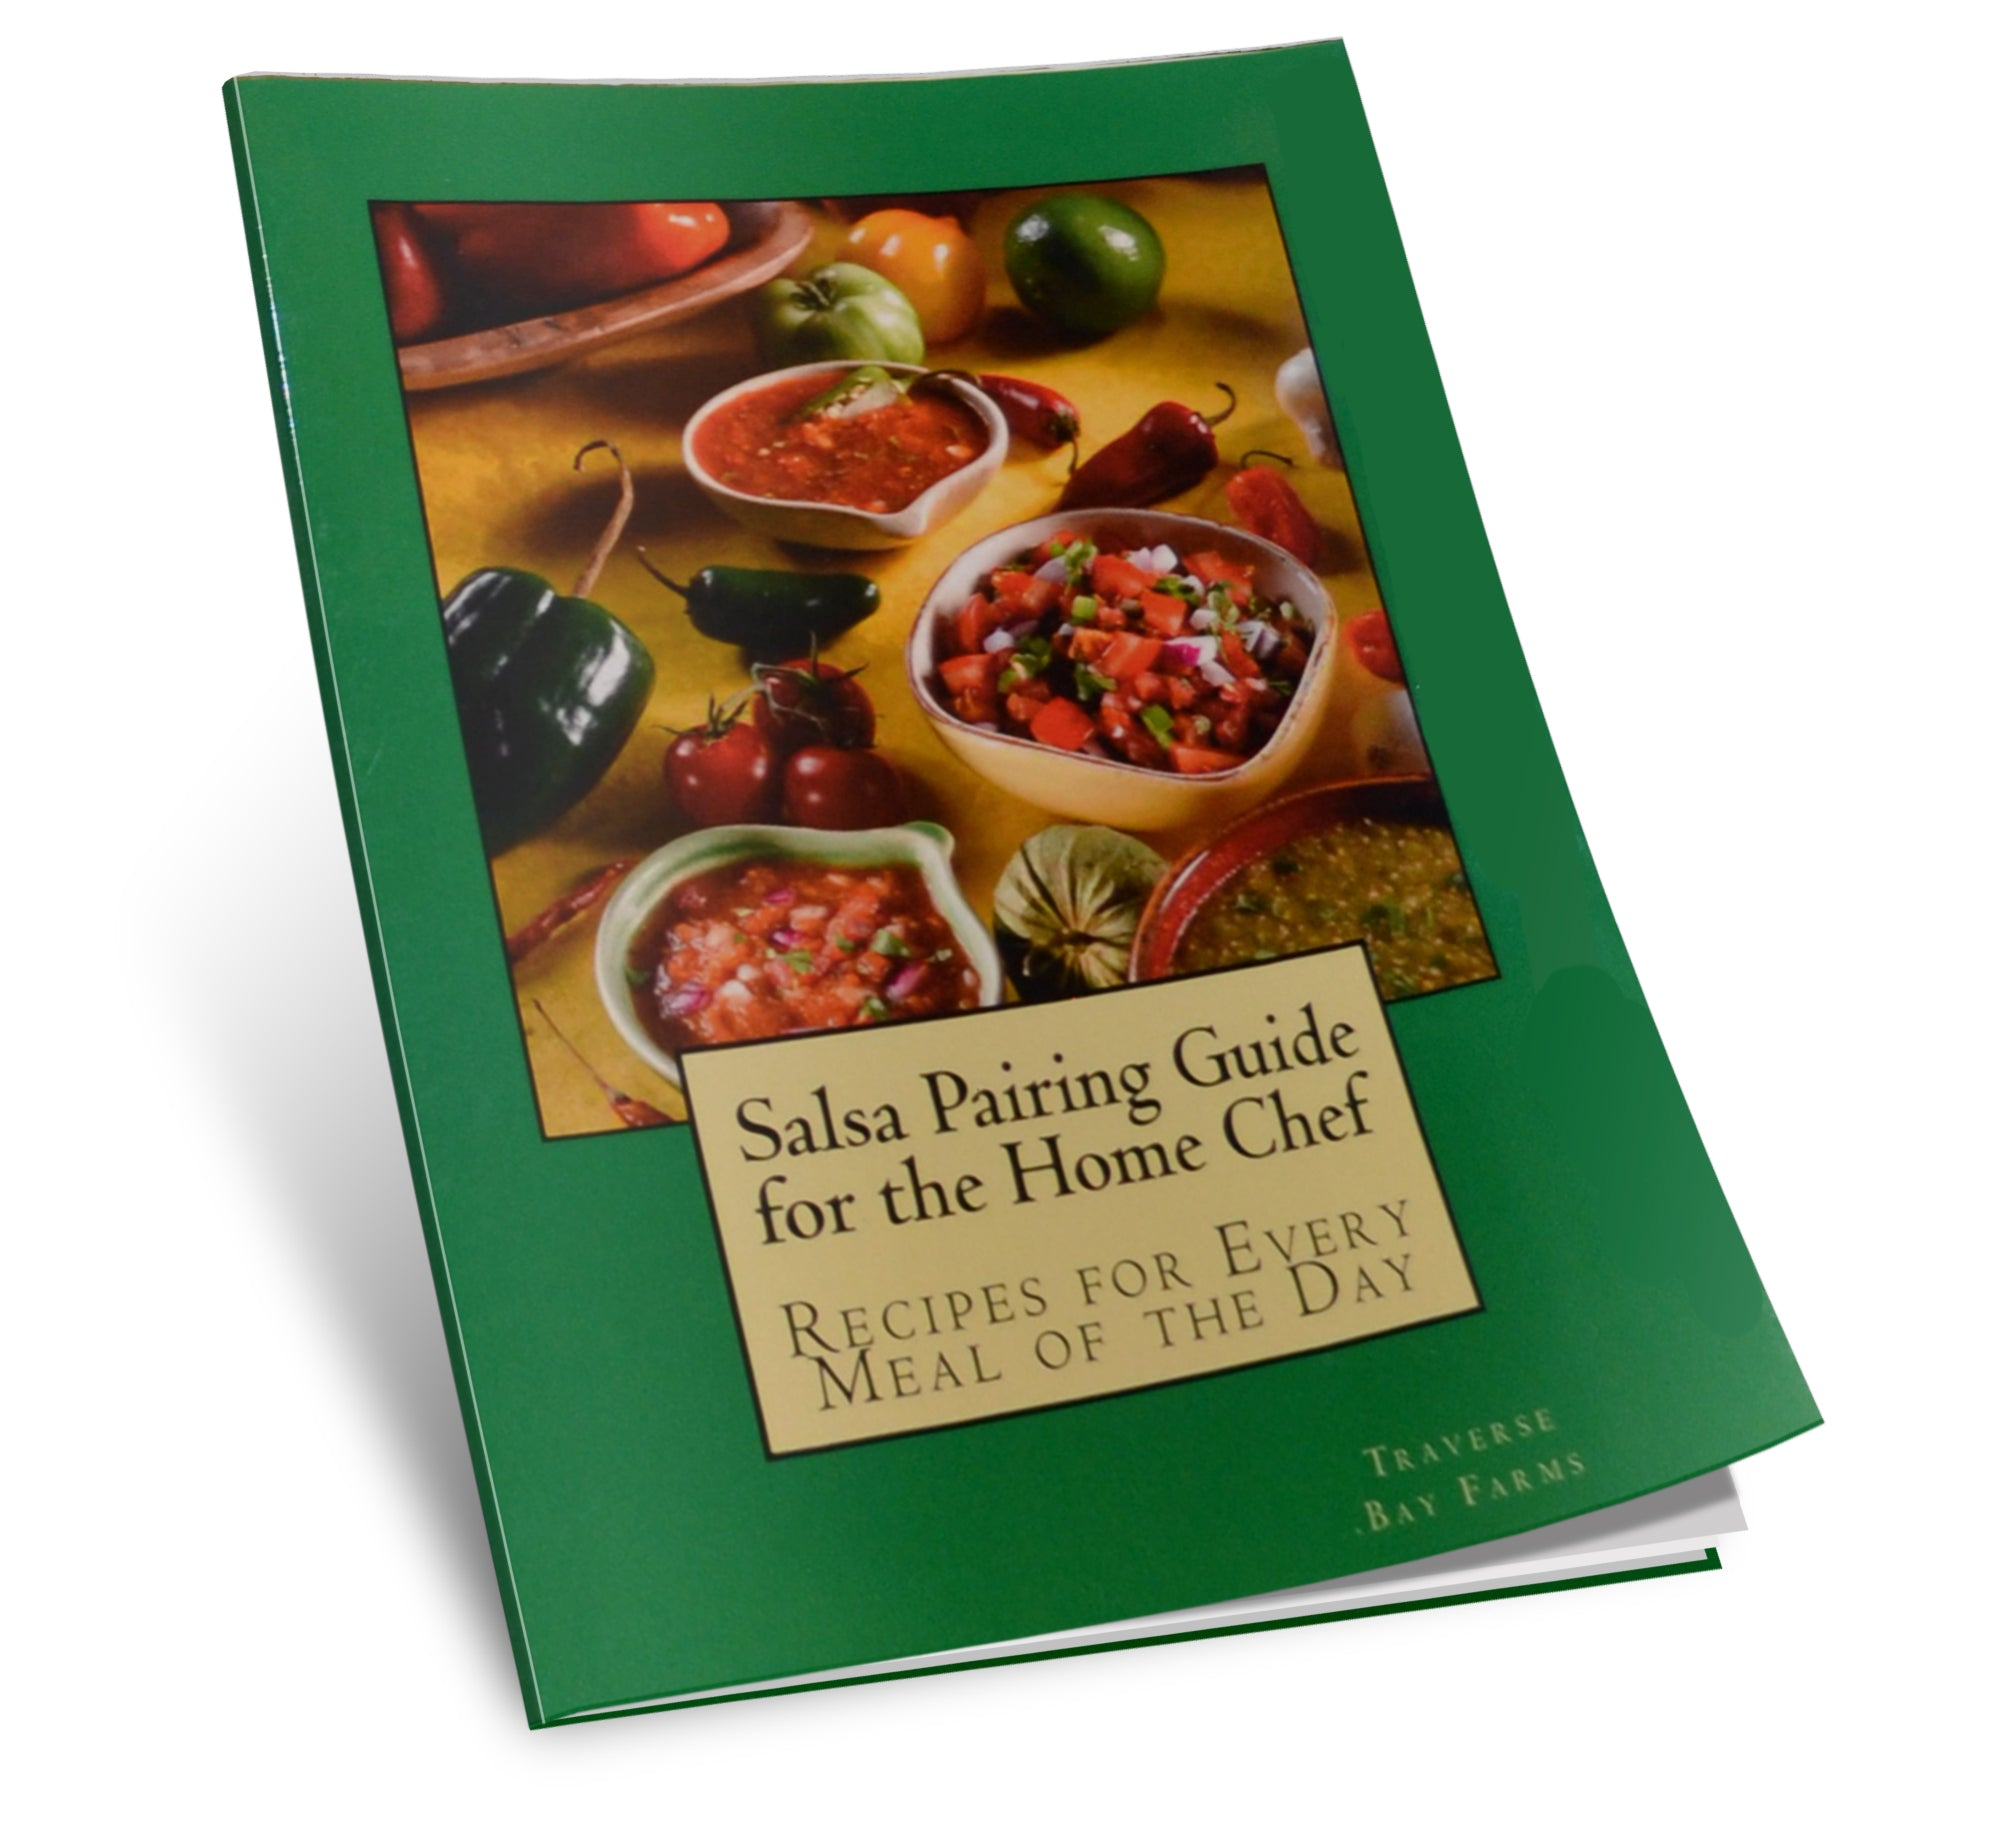 Salsa Pairing Guide for the Home Chef - traversebayfarms